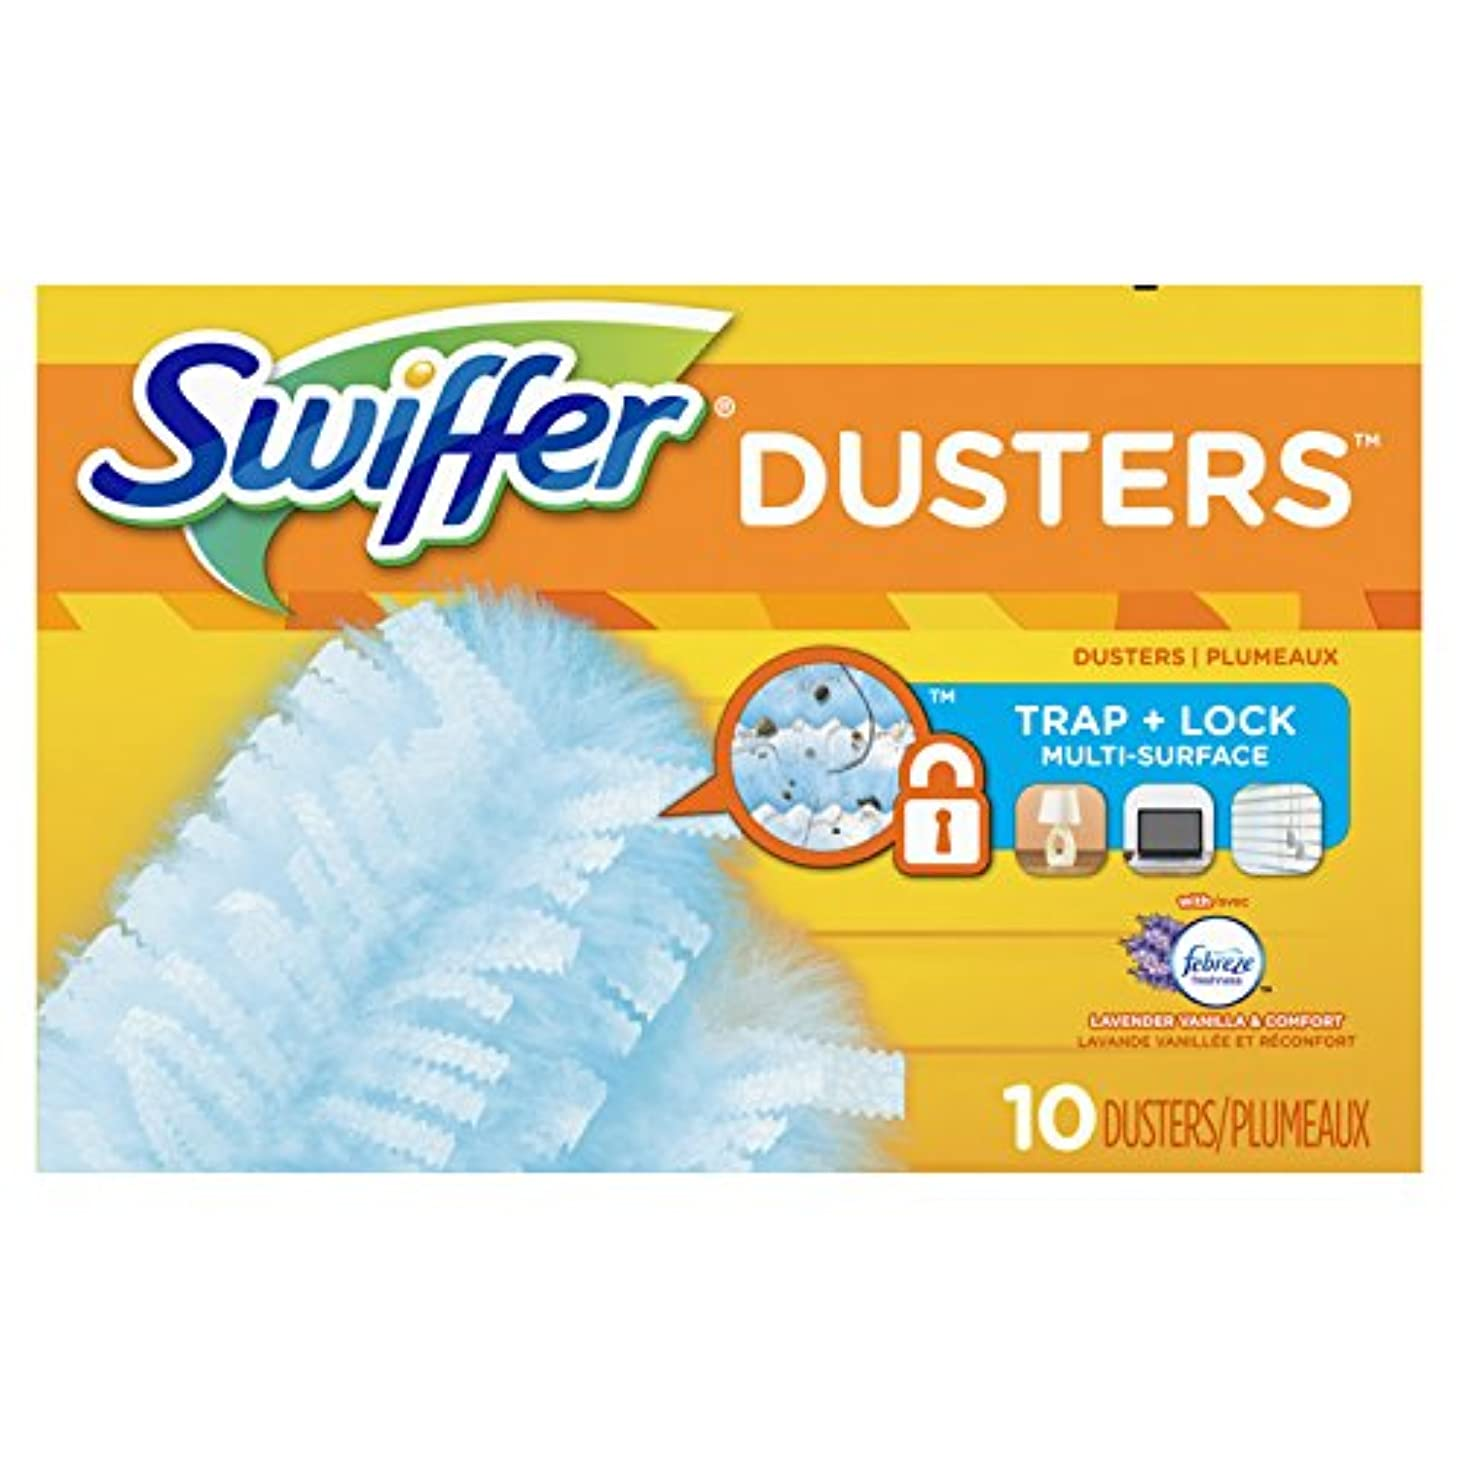 Swiffer 180 Dusters Multi Surface Refills, with Febreze Lavender & Vanilla Scent, 10 Count (Packaging May Vary)